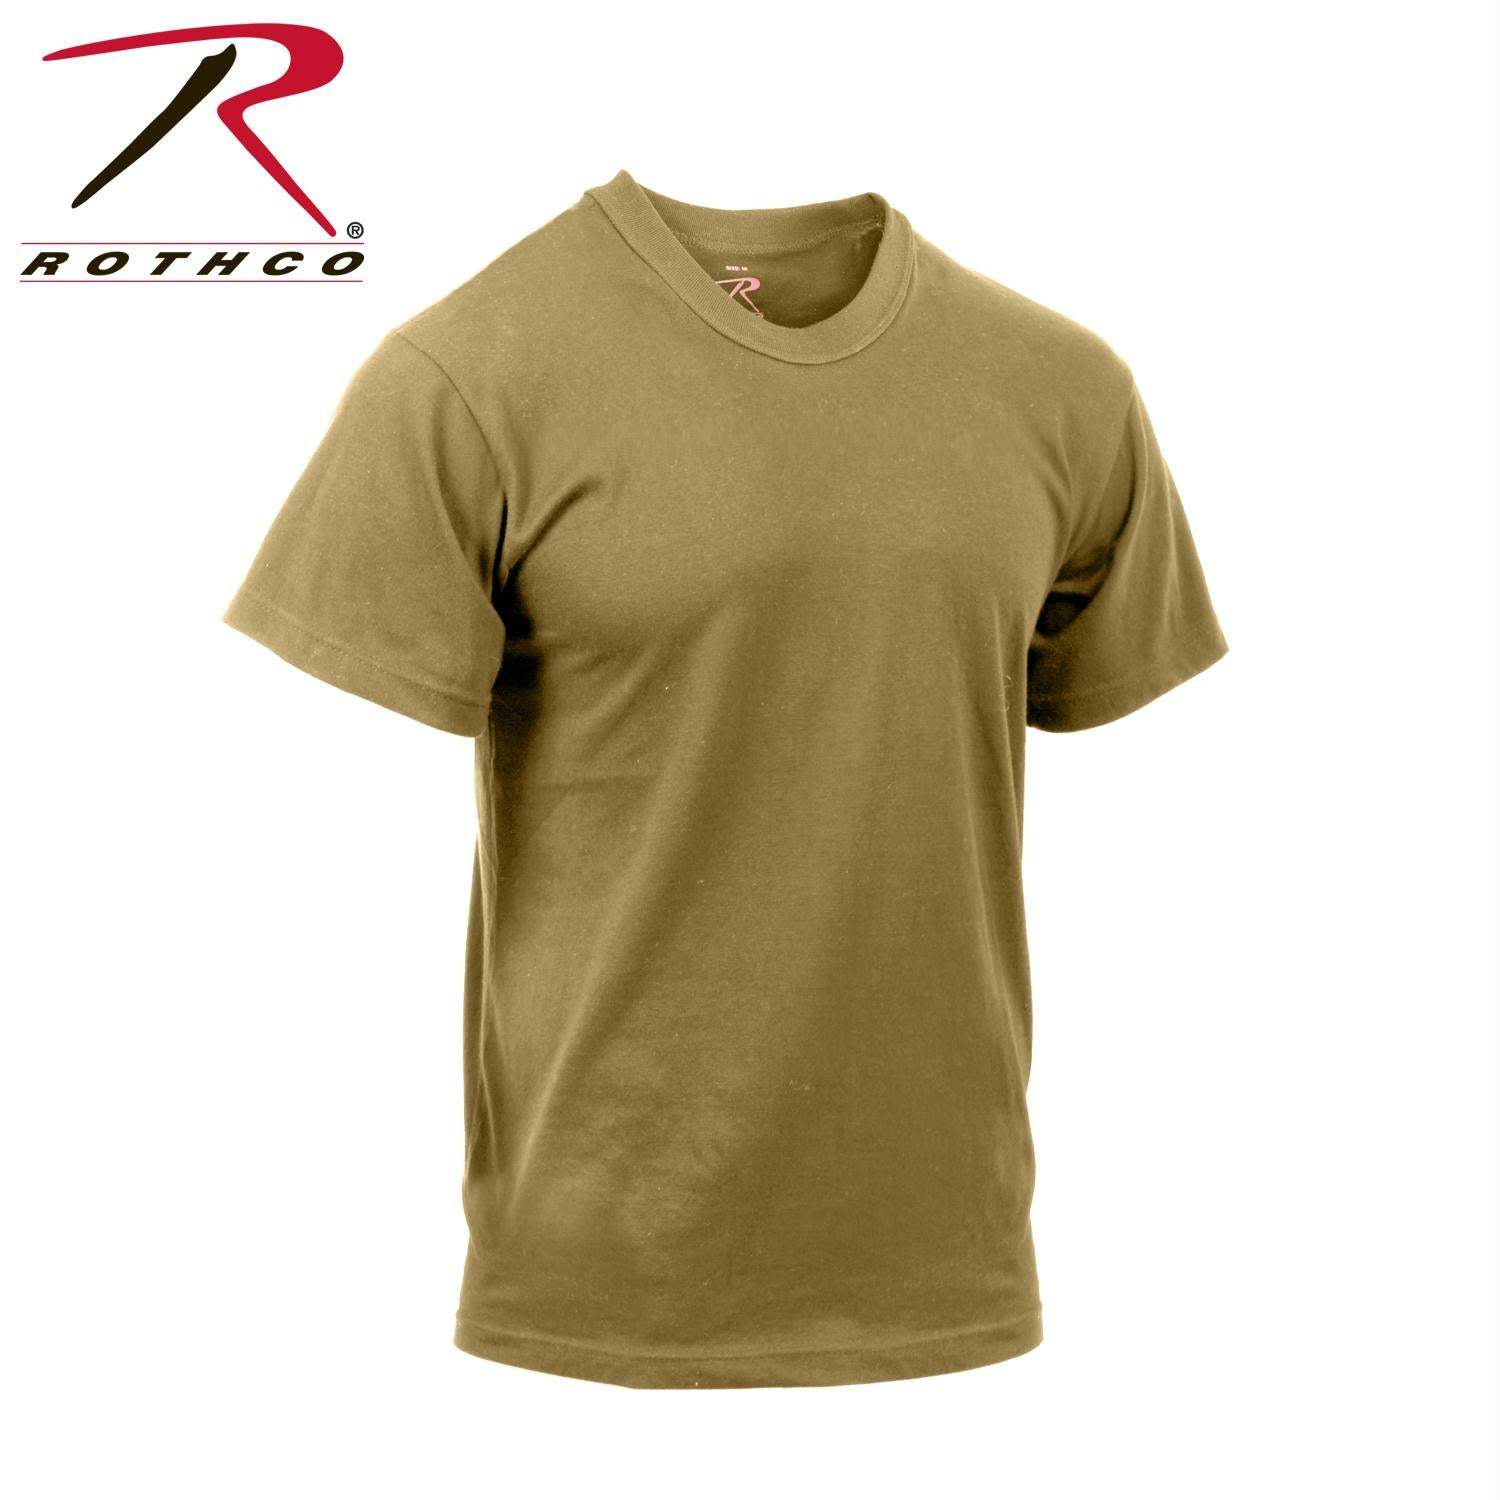 Rothco Moisture Wicking T-Shirts - Brown / 3XL